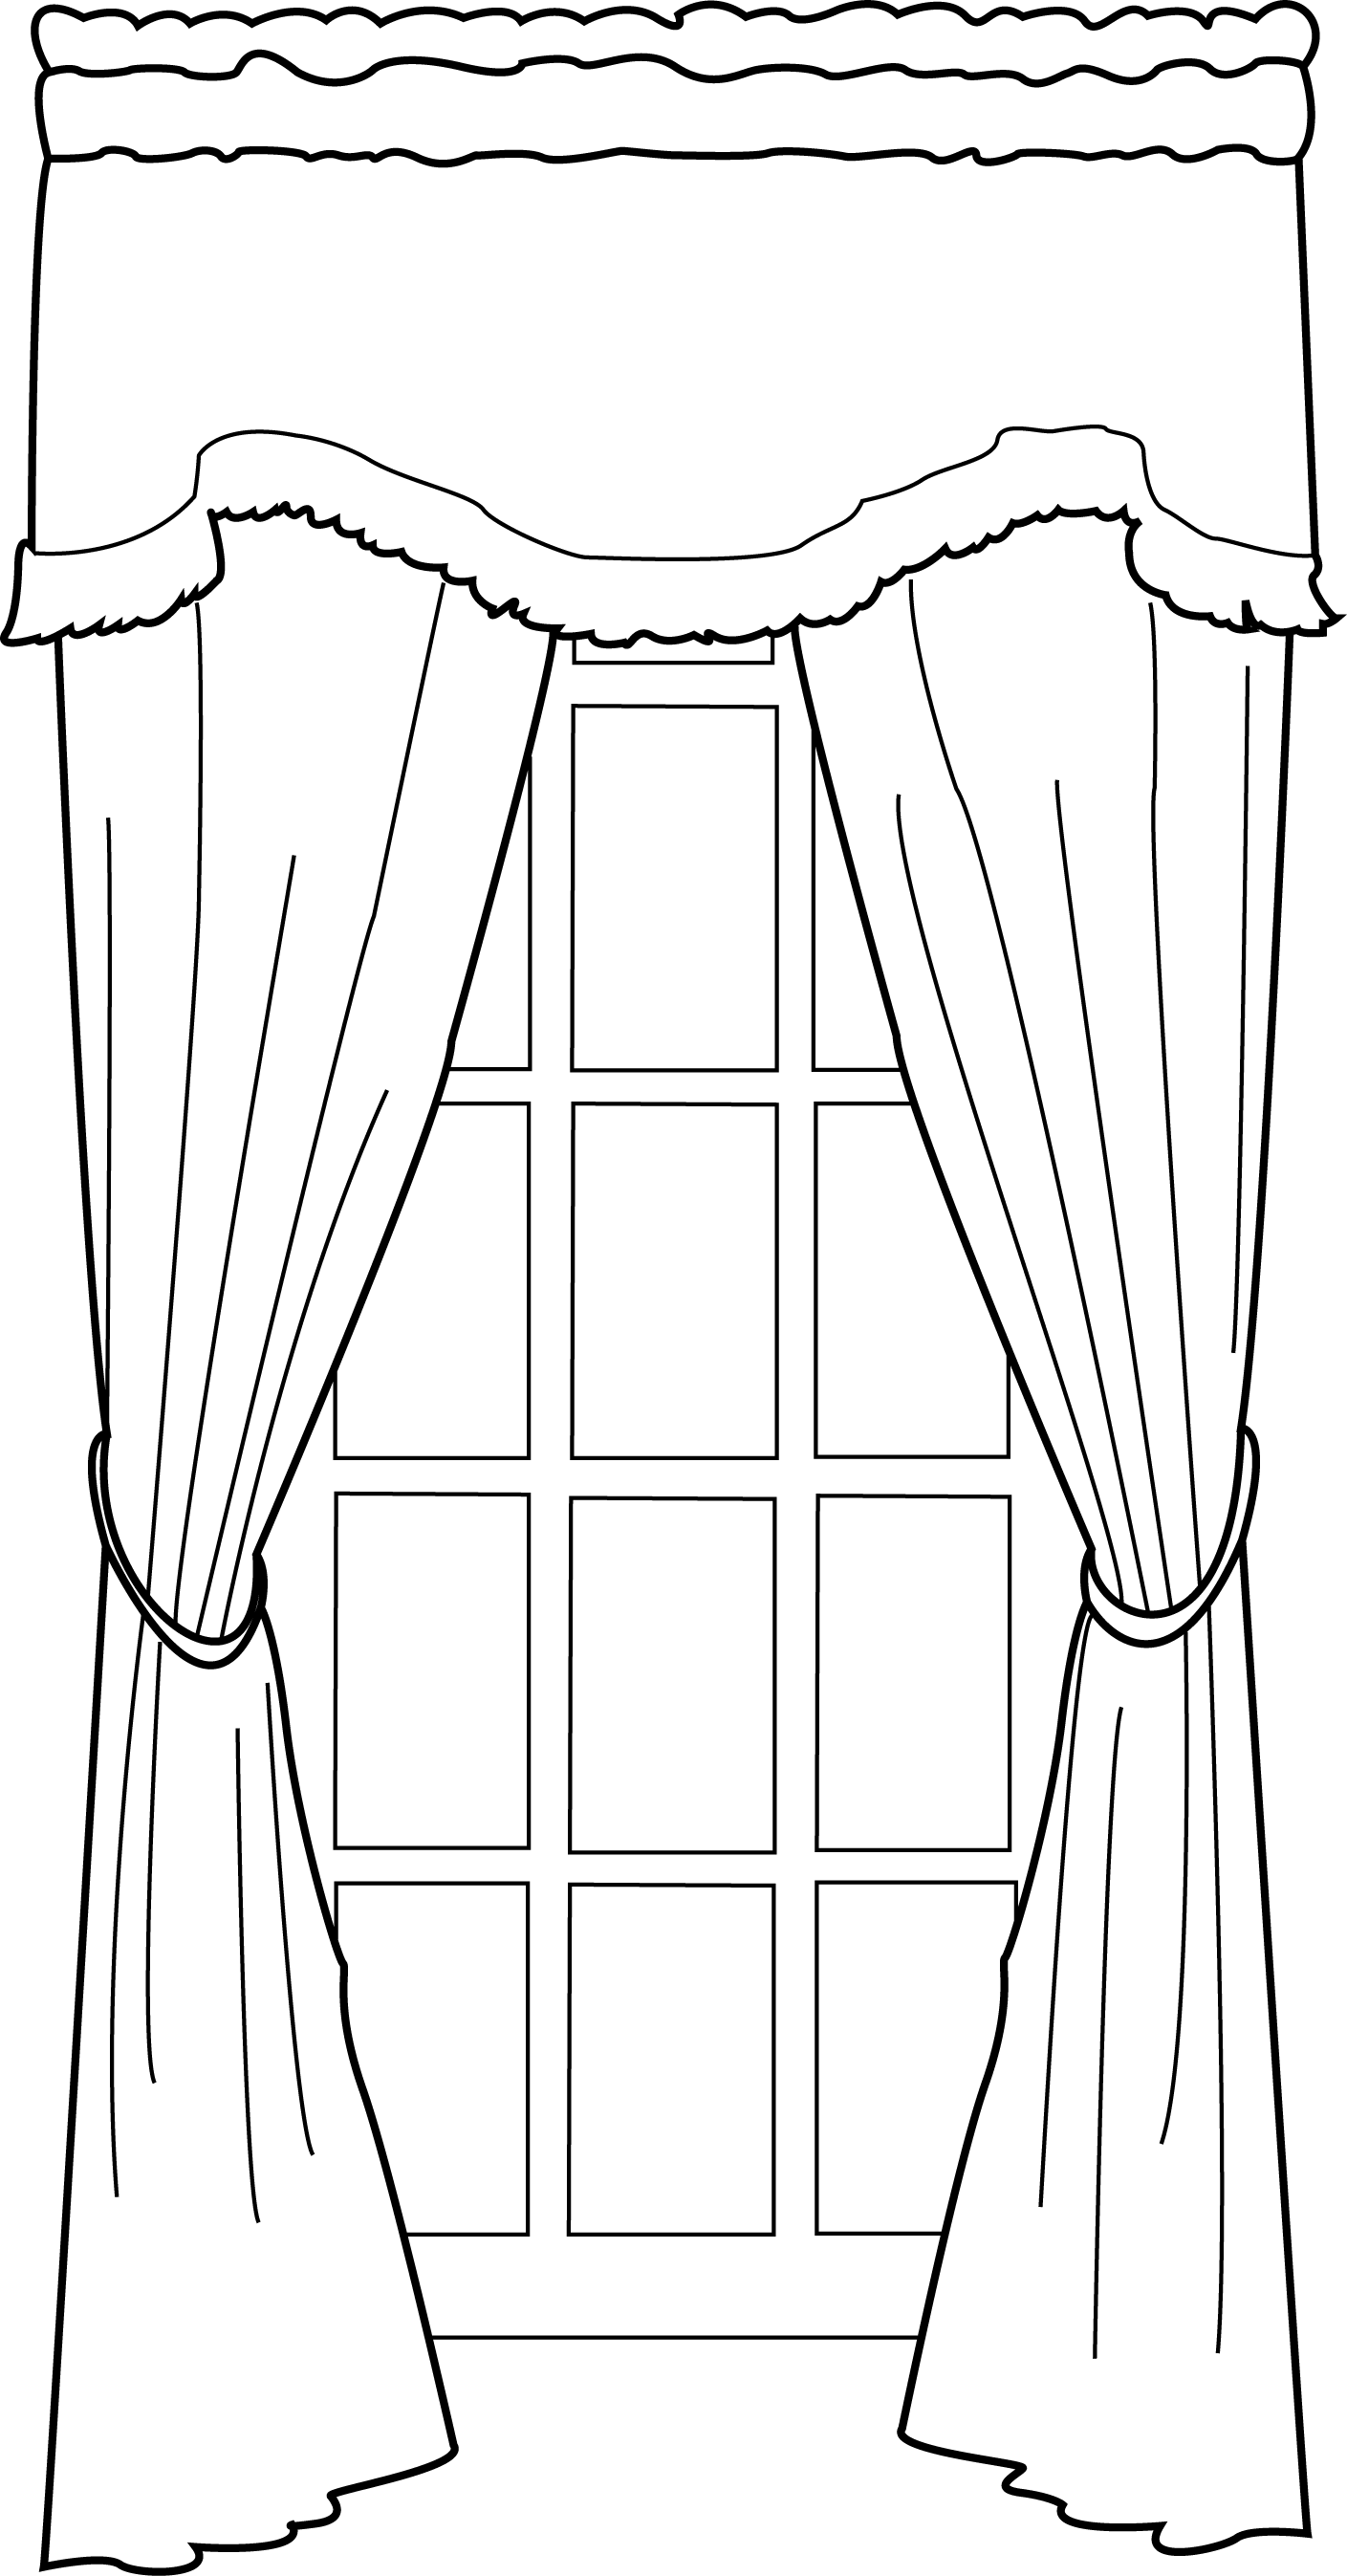 line drawing coloring pages - photo#32